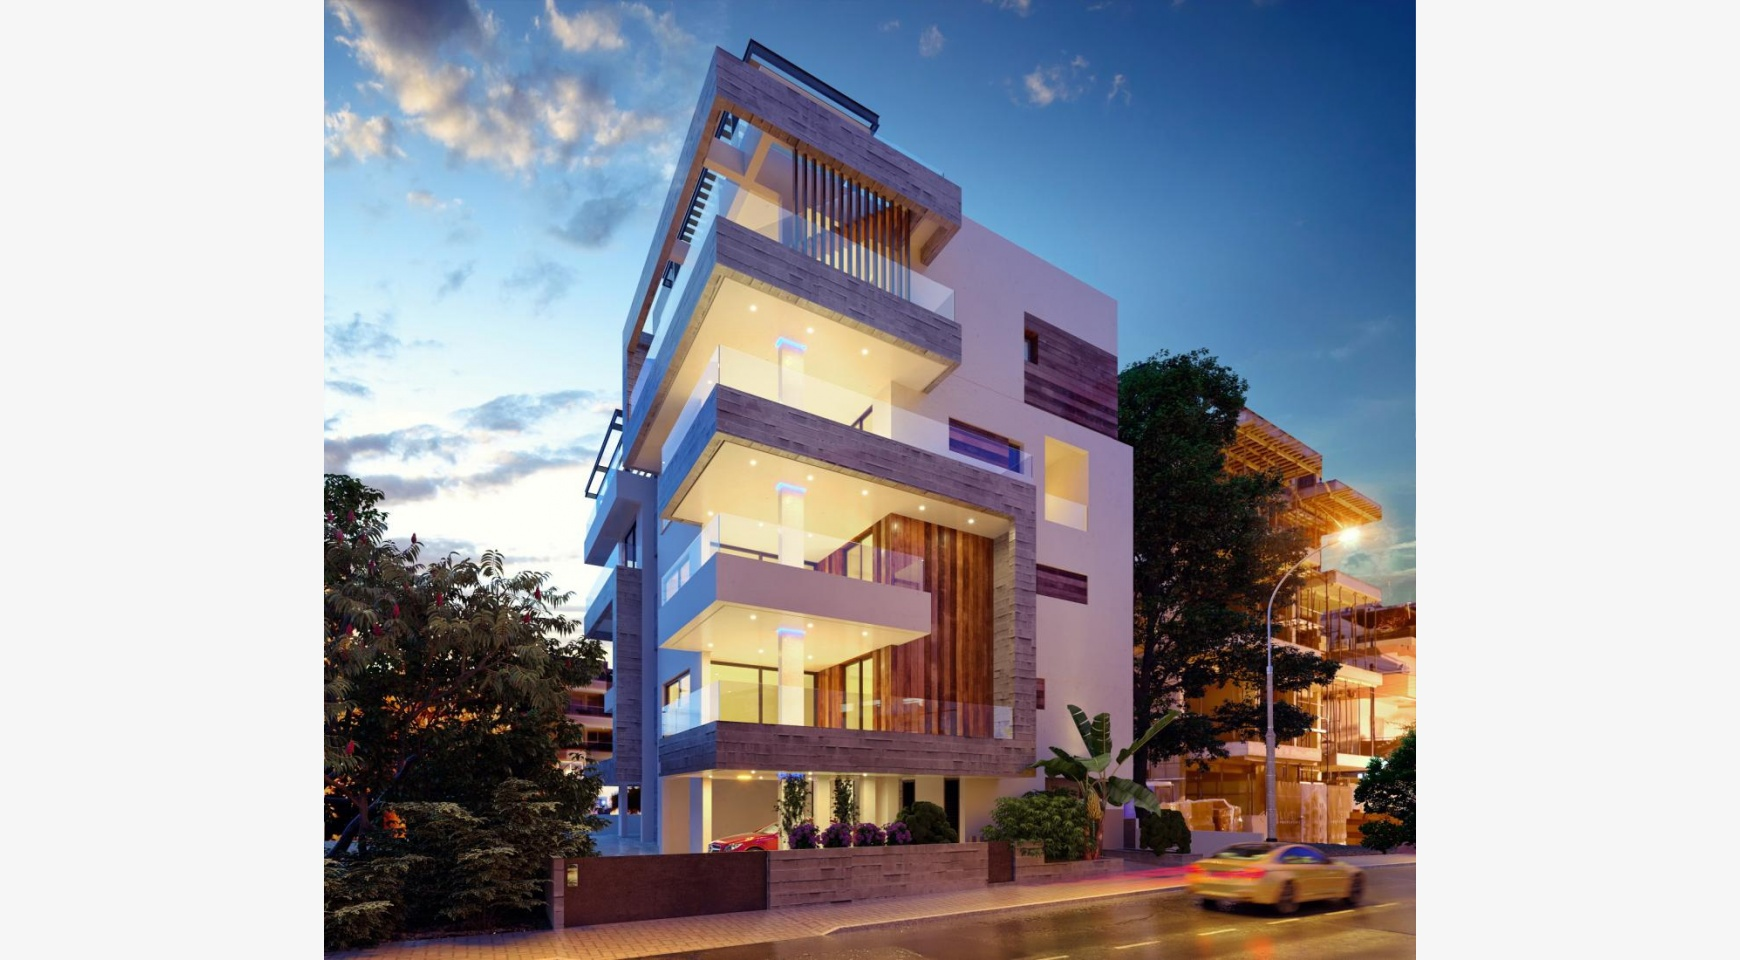 3 Bedroom Penthouse with a Private Pool in a New Contemporary Building near the Sea - 1